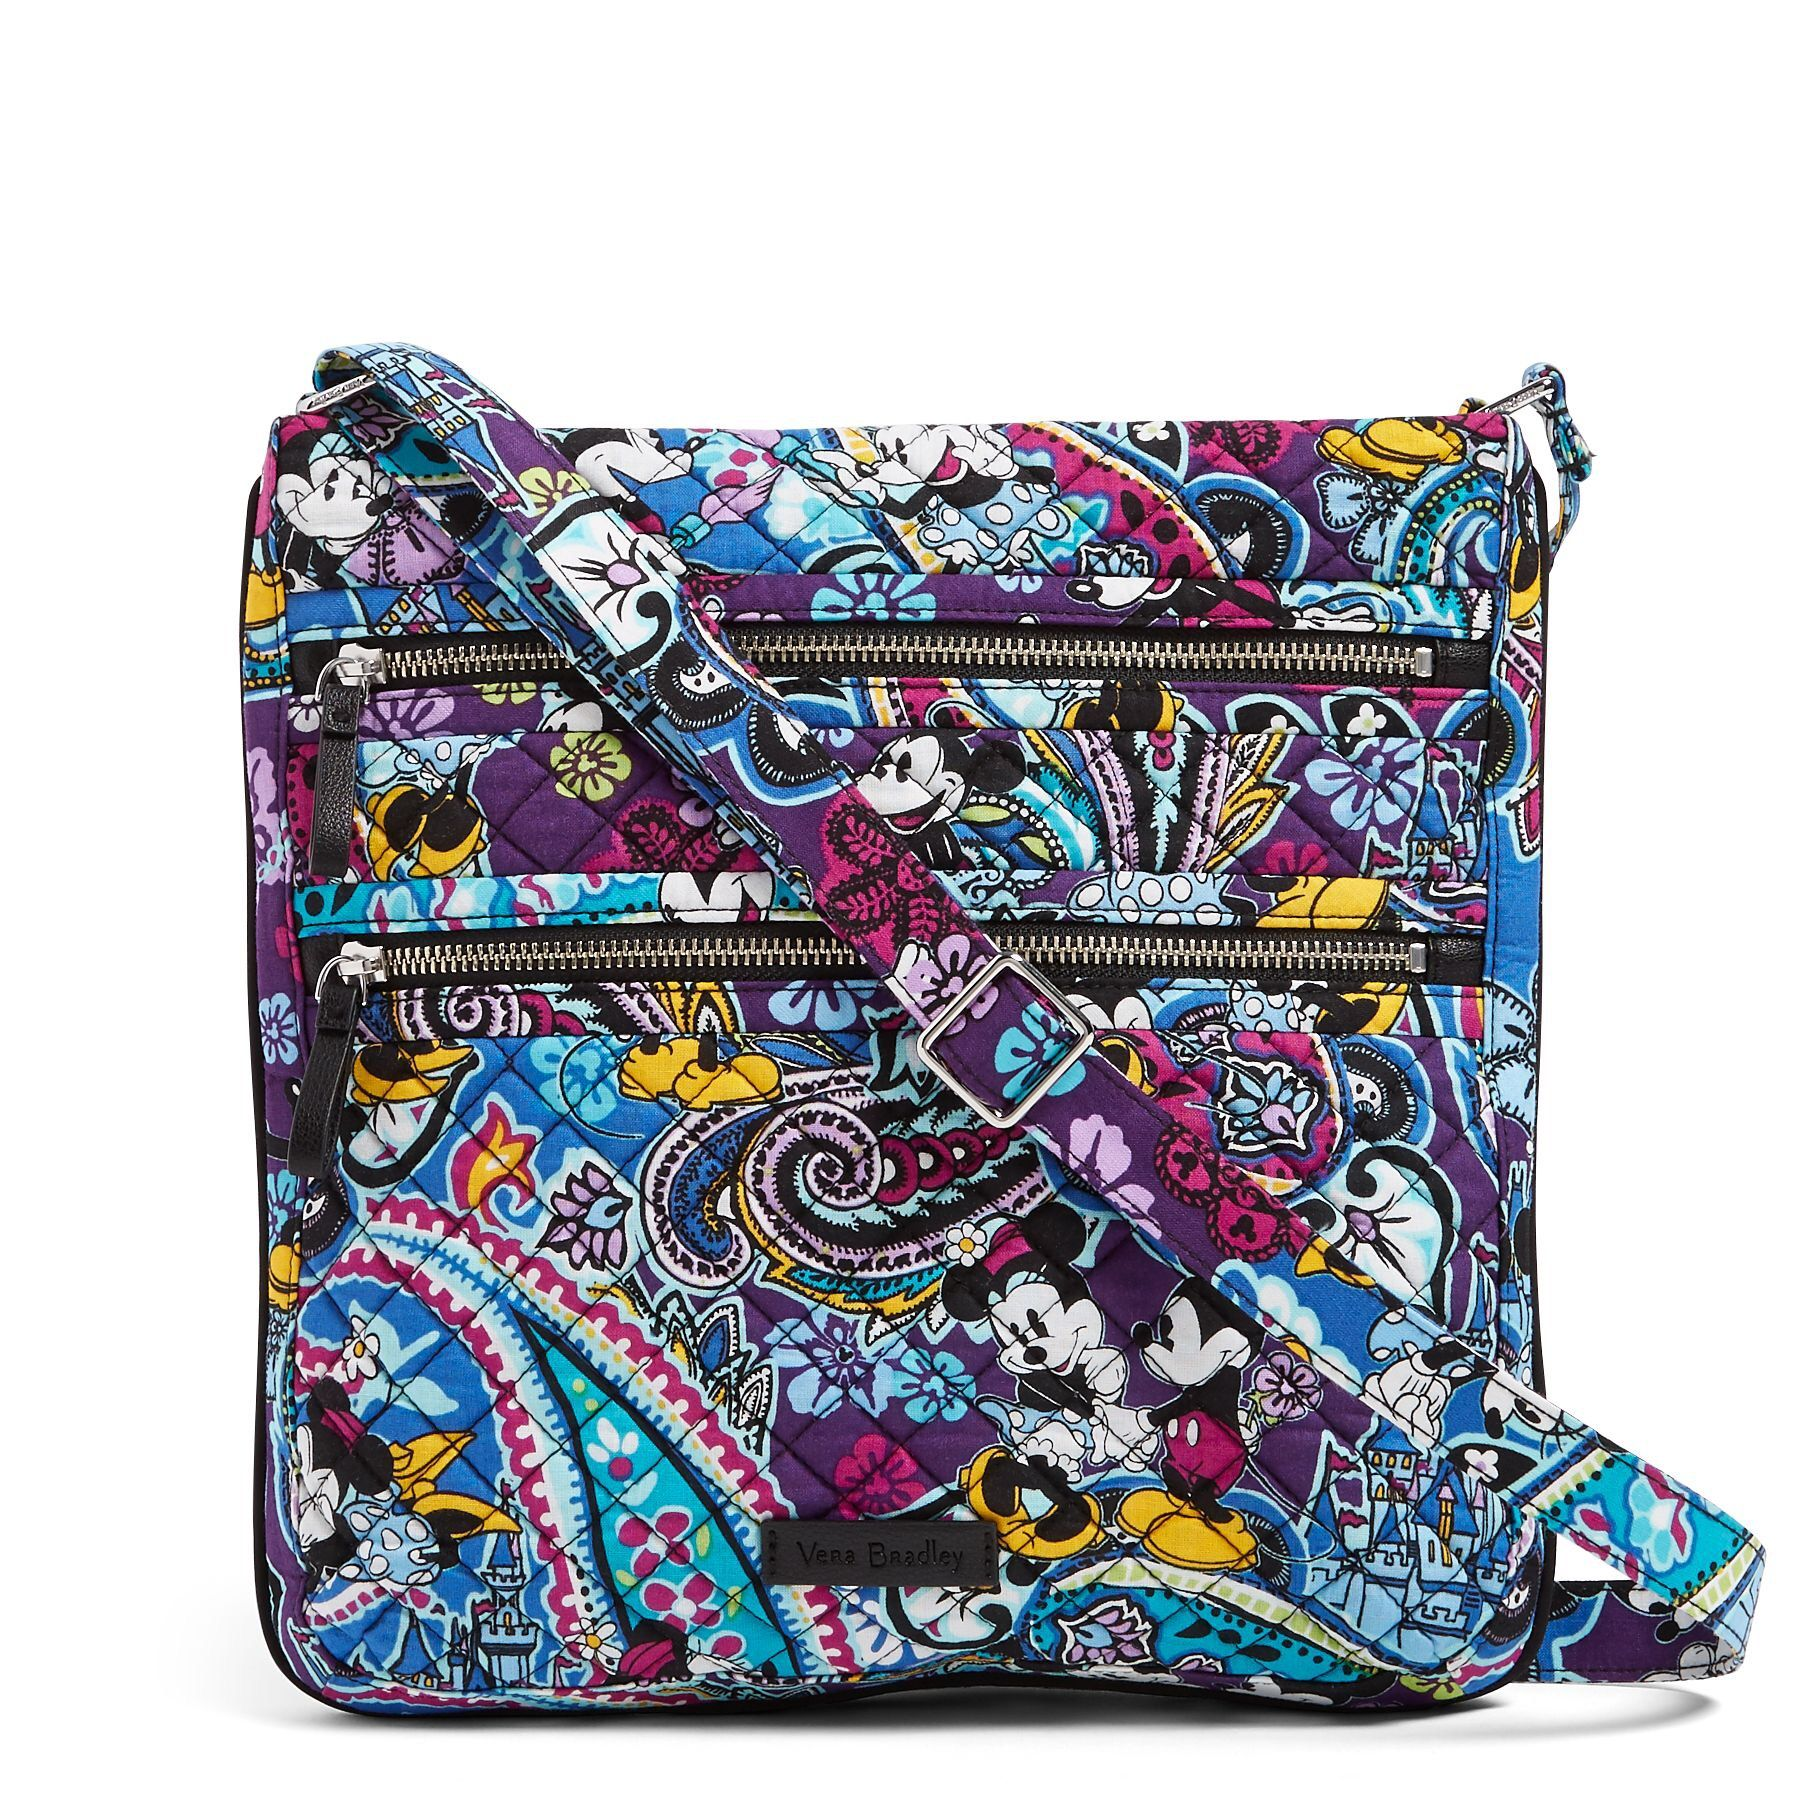 Explore The Features of The Vera Bradley Iconic Mailbag - YouTube